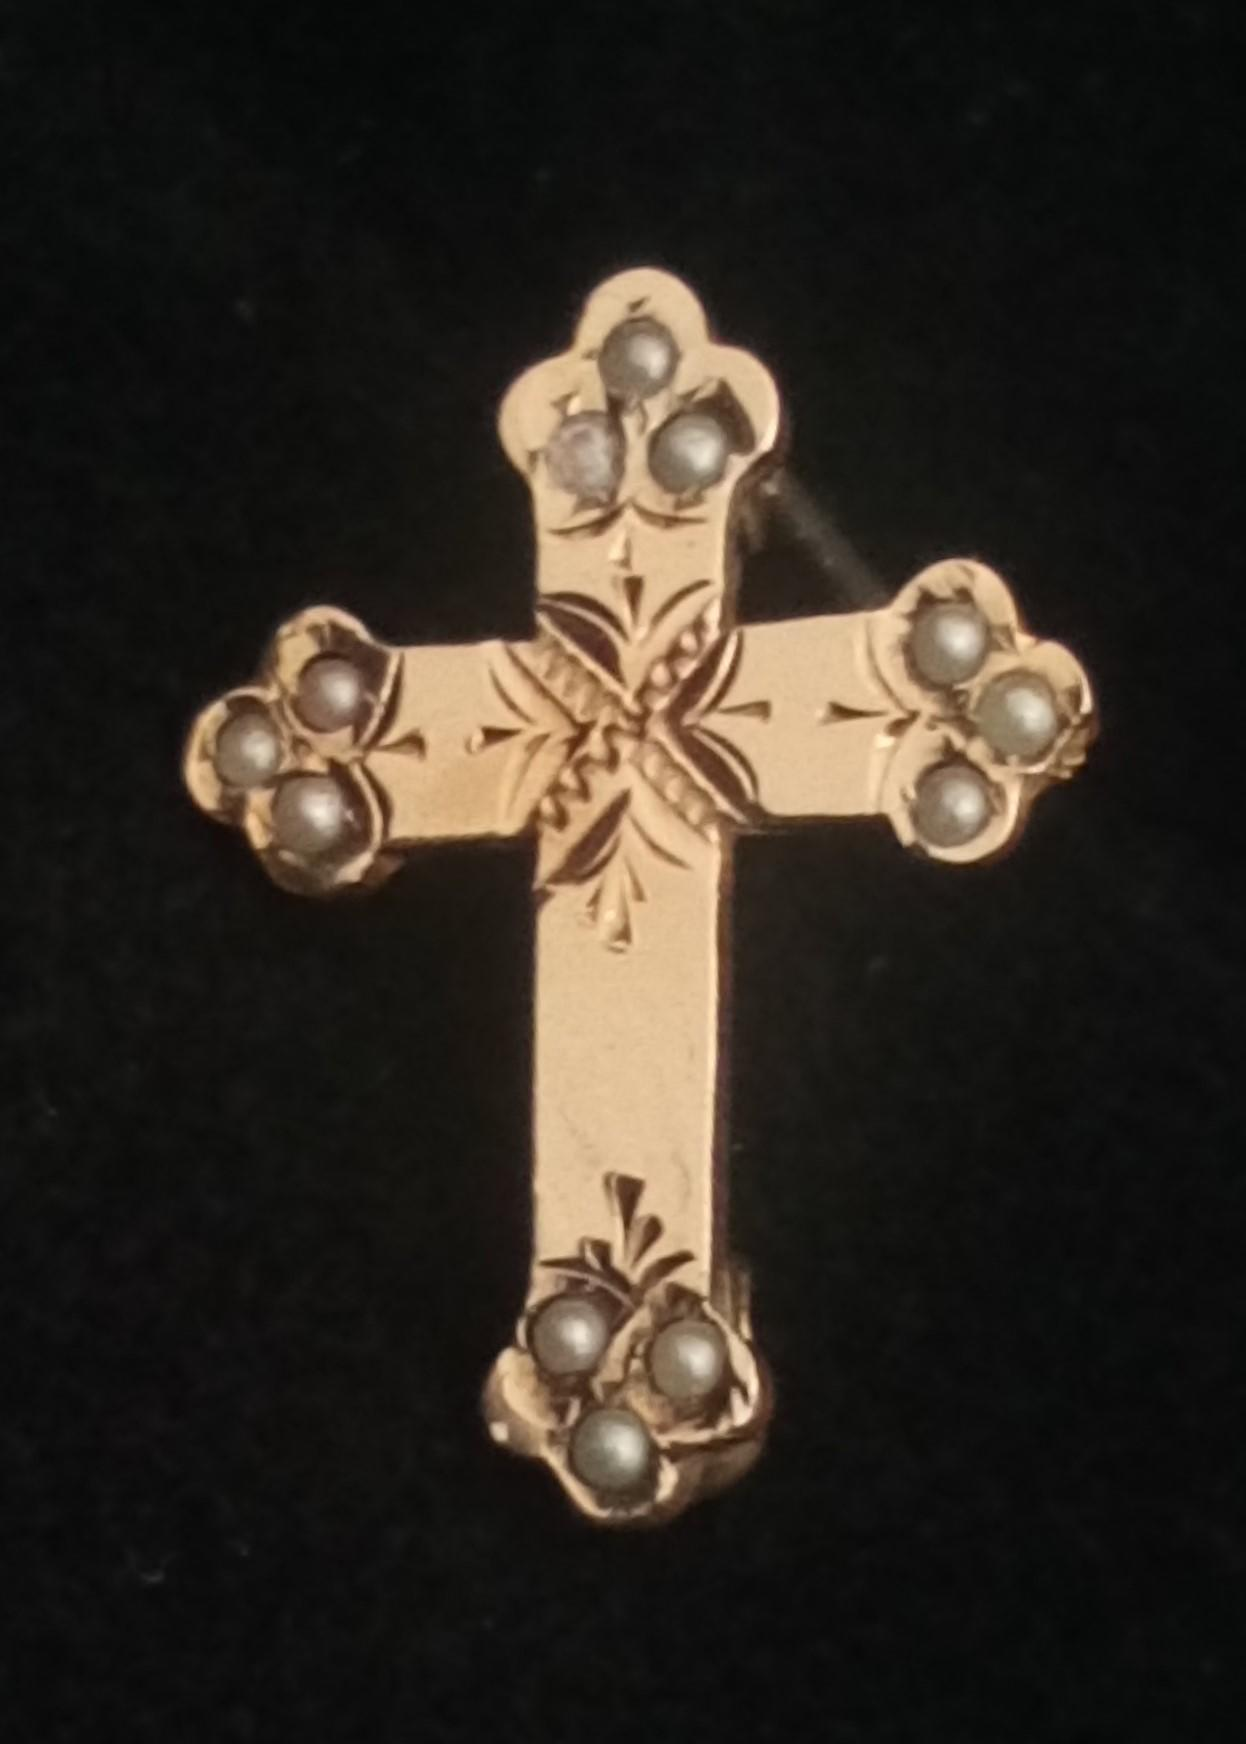 Antique Victorian 9ct Gold Front and Seed Pearl Tiny Cross Brooch or Pin c 1890